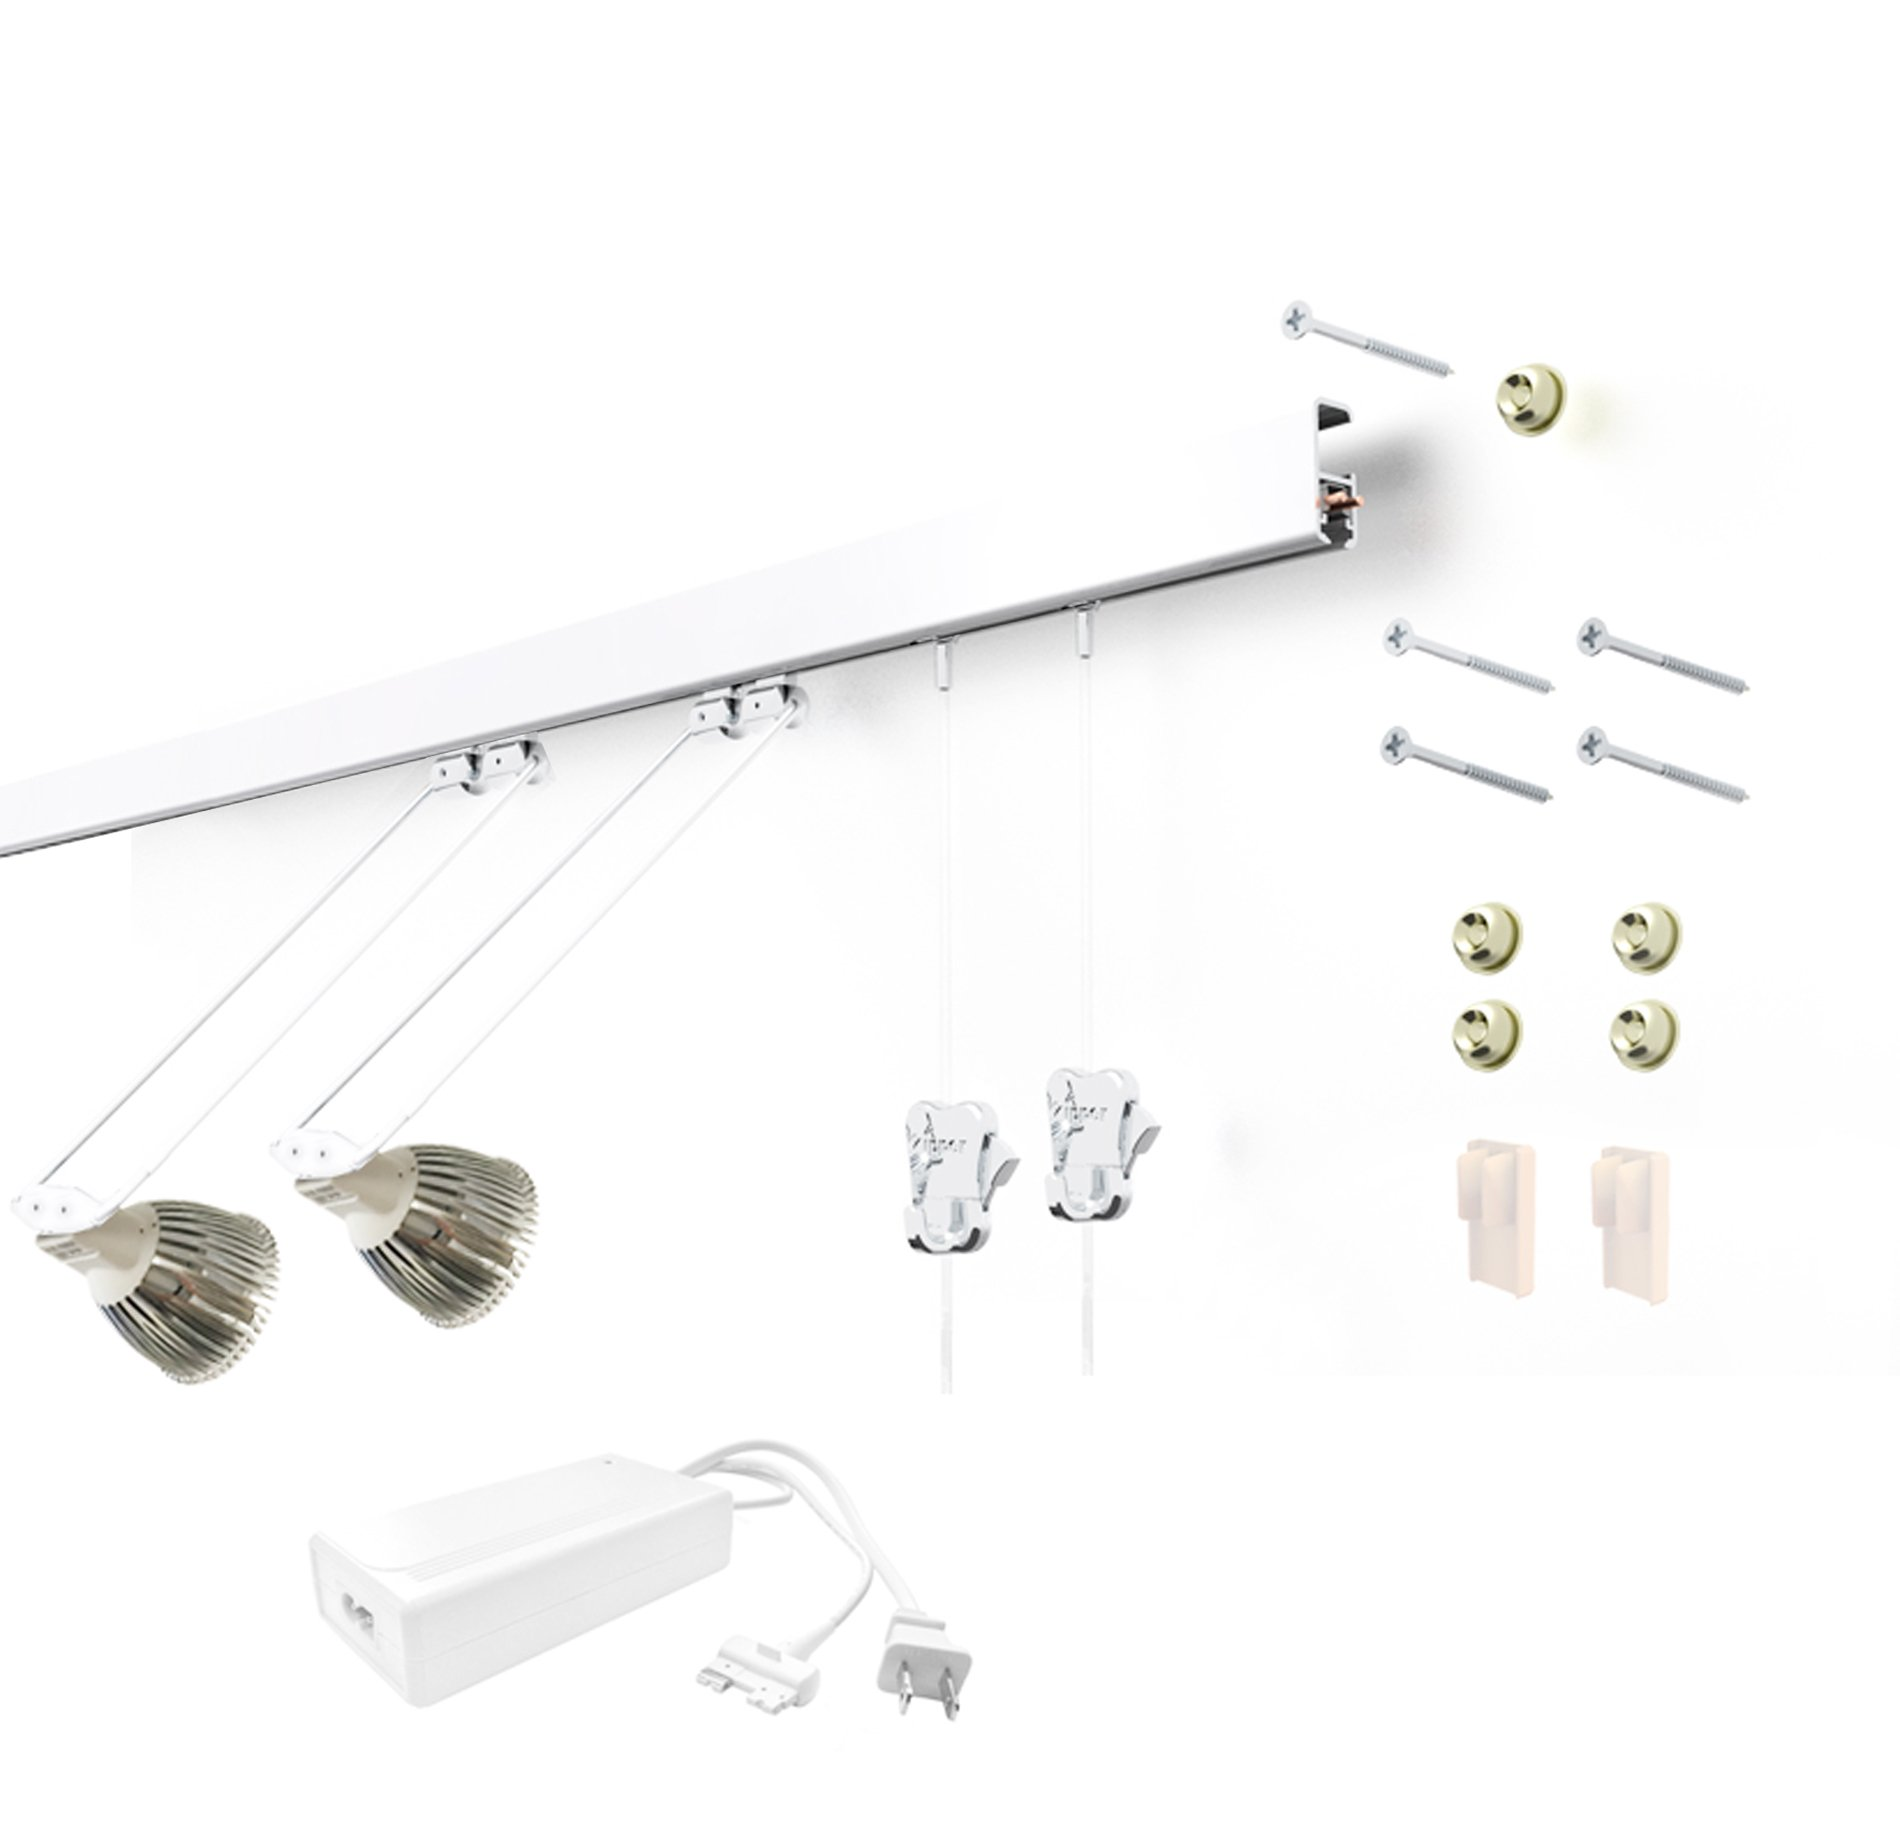 STAS Multirail Picture Hanging System- Complete Kit with 2 Hanging and LED Lighting Components (White)